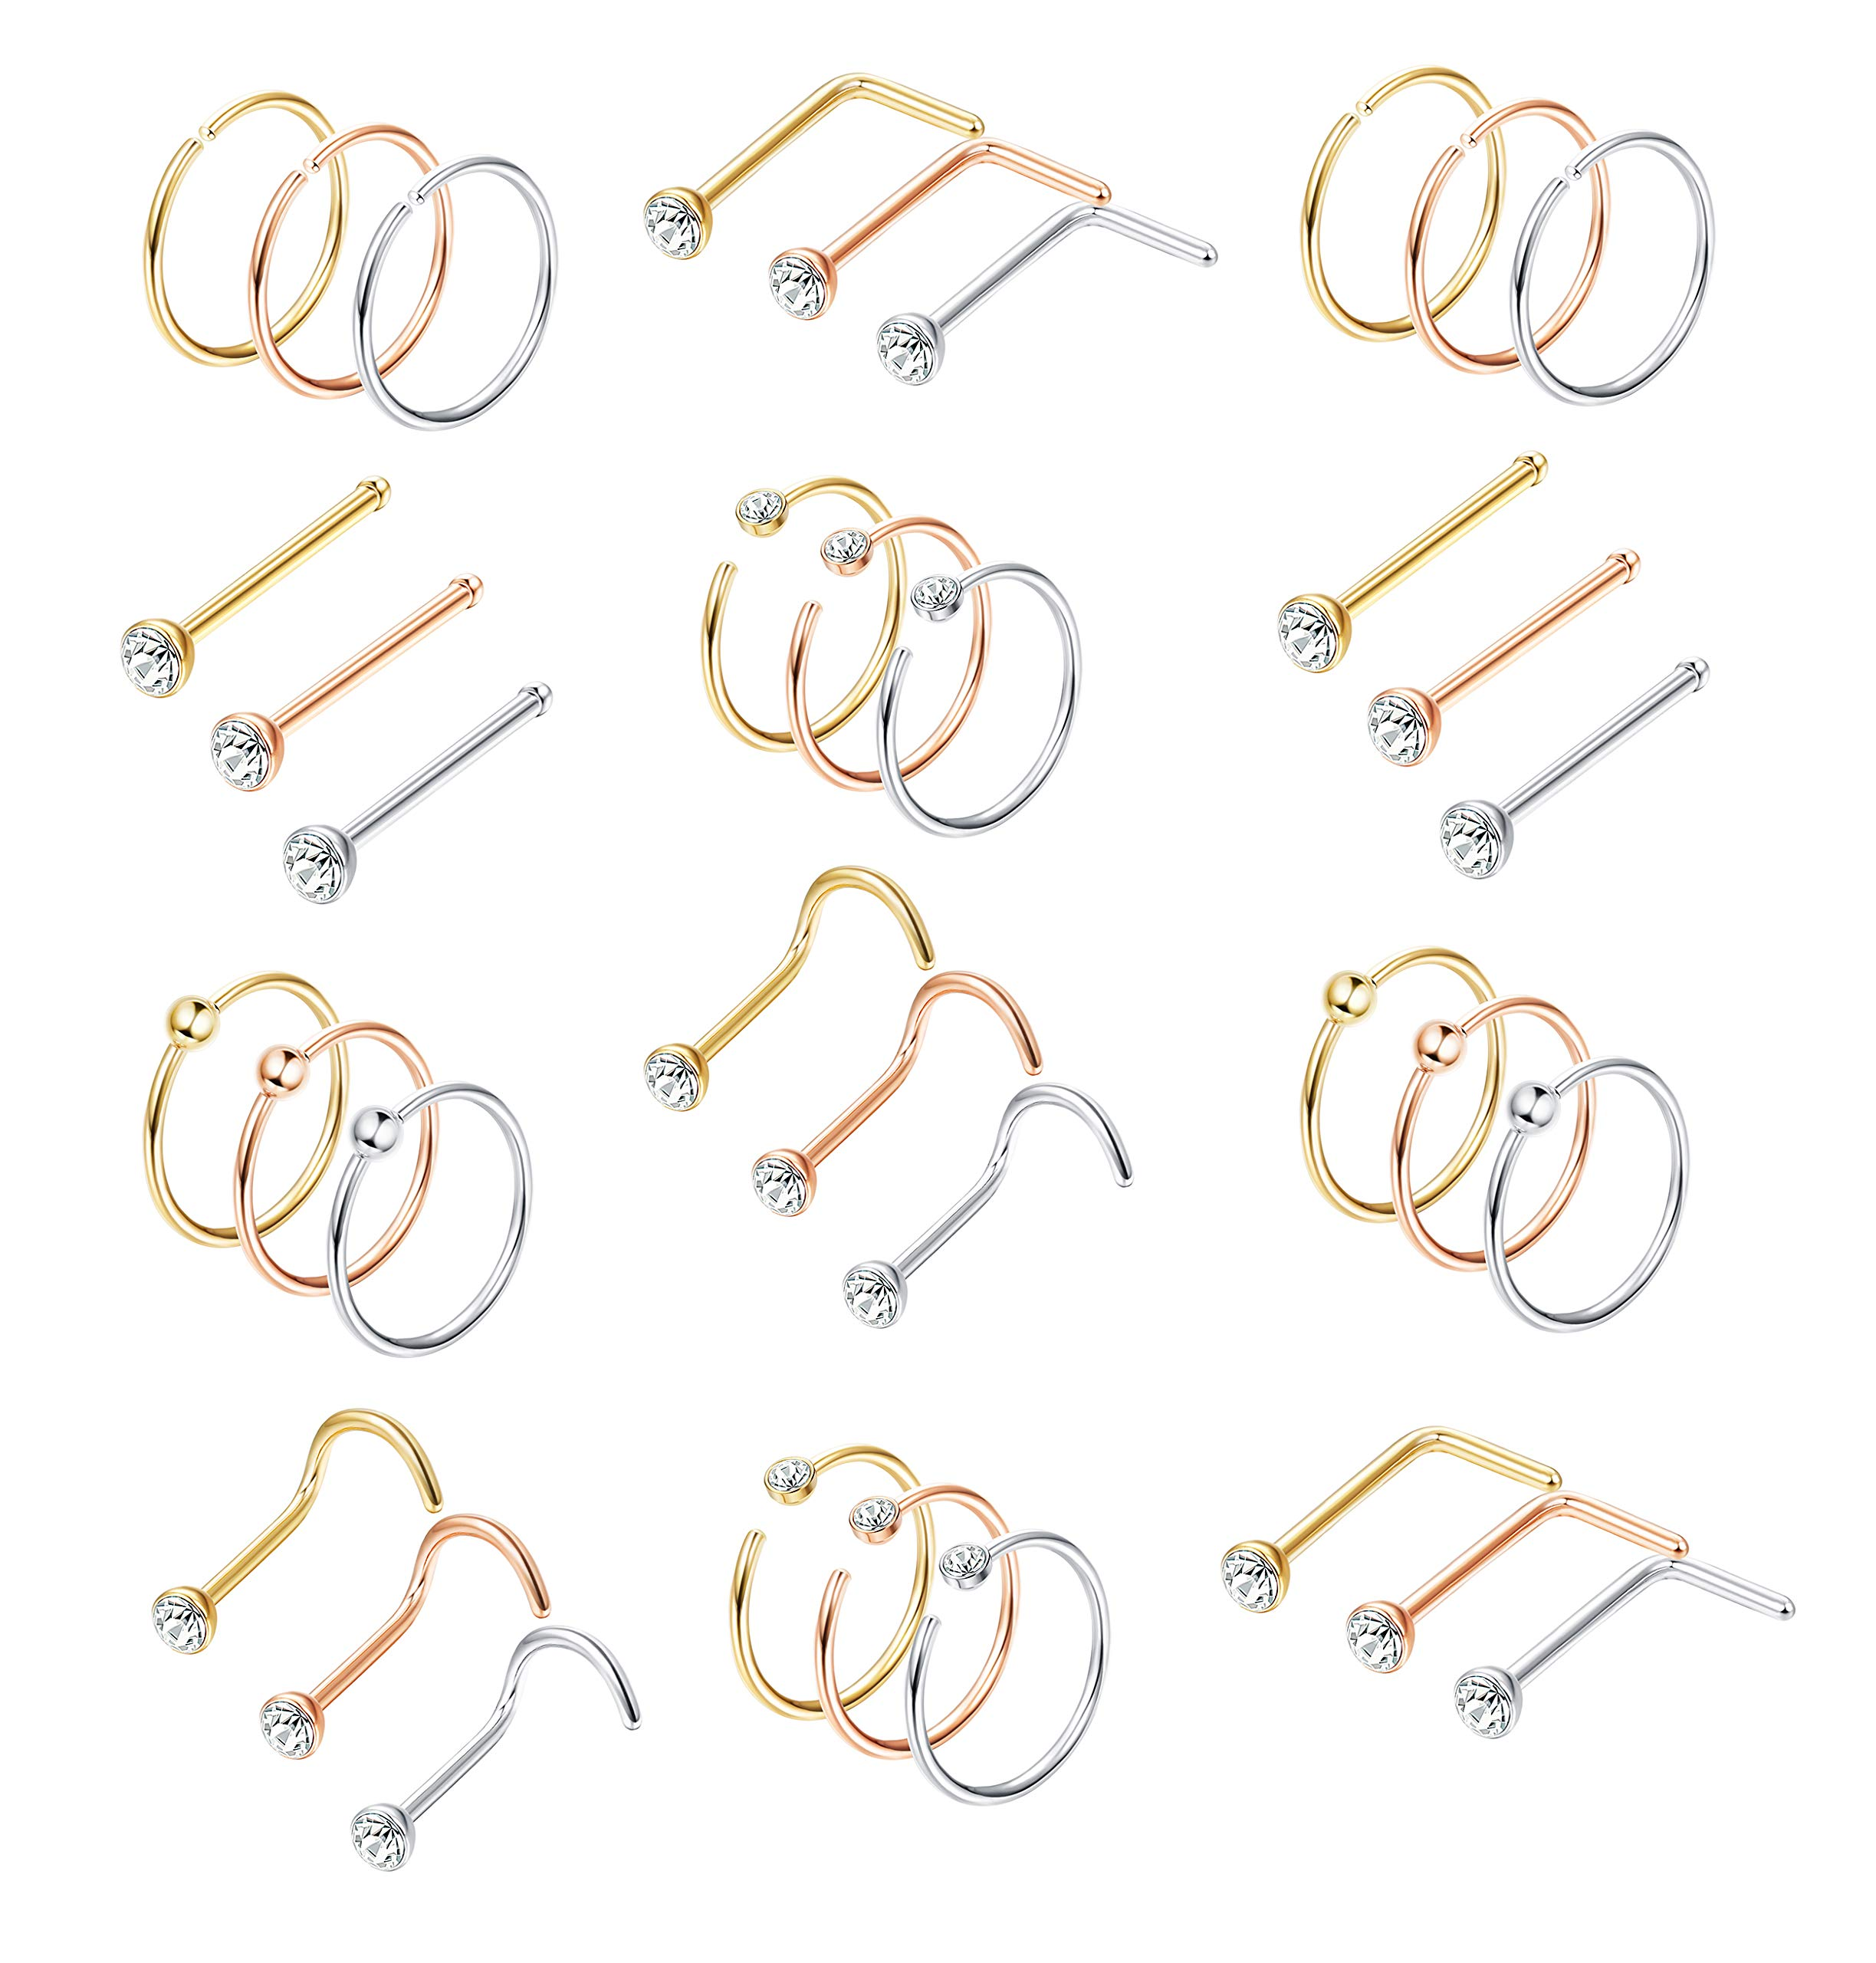 Milacolato 36Pcs 316L Stainless Steel Nose, Gold-Silver-Rose-Gold, Size No Size by Milacolato